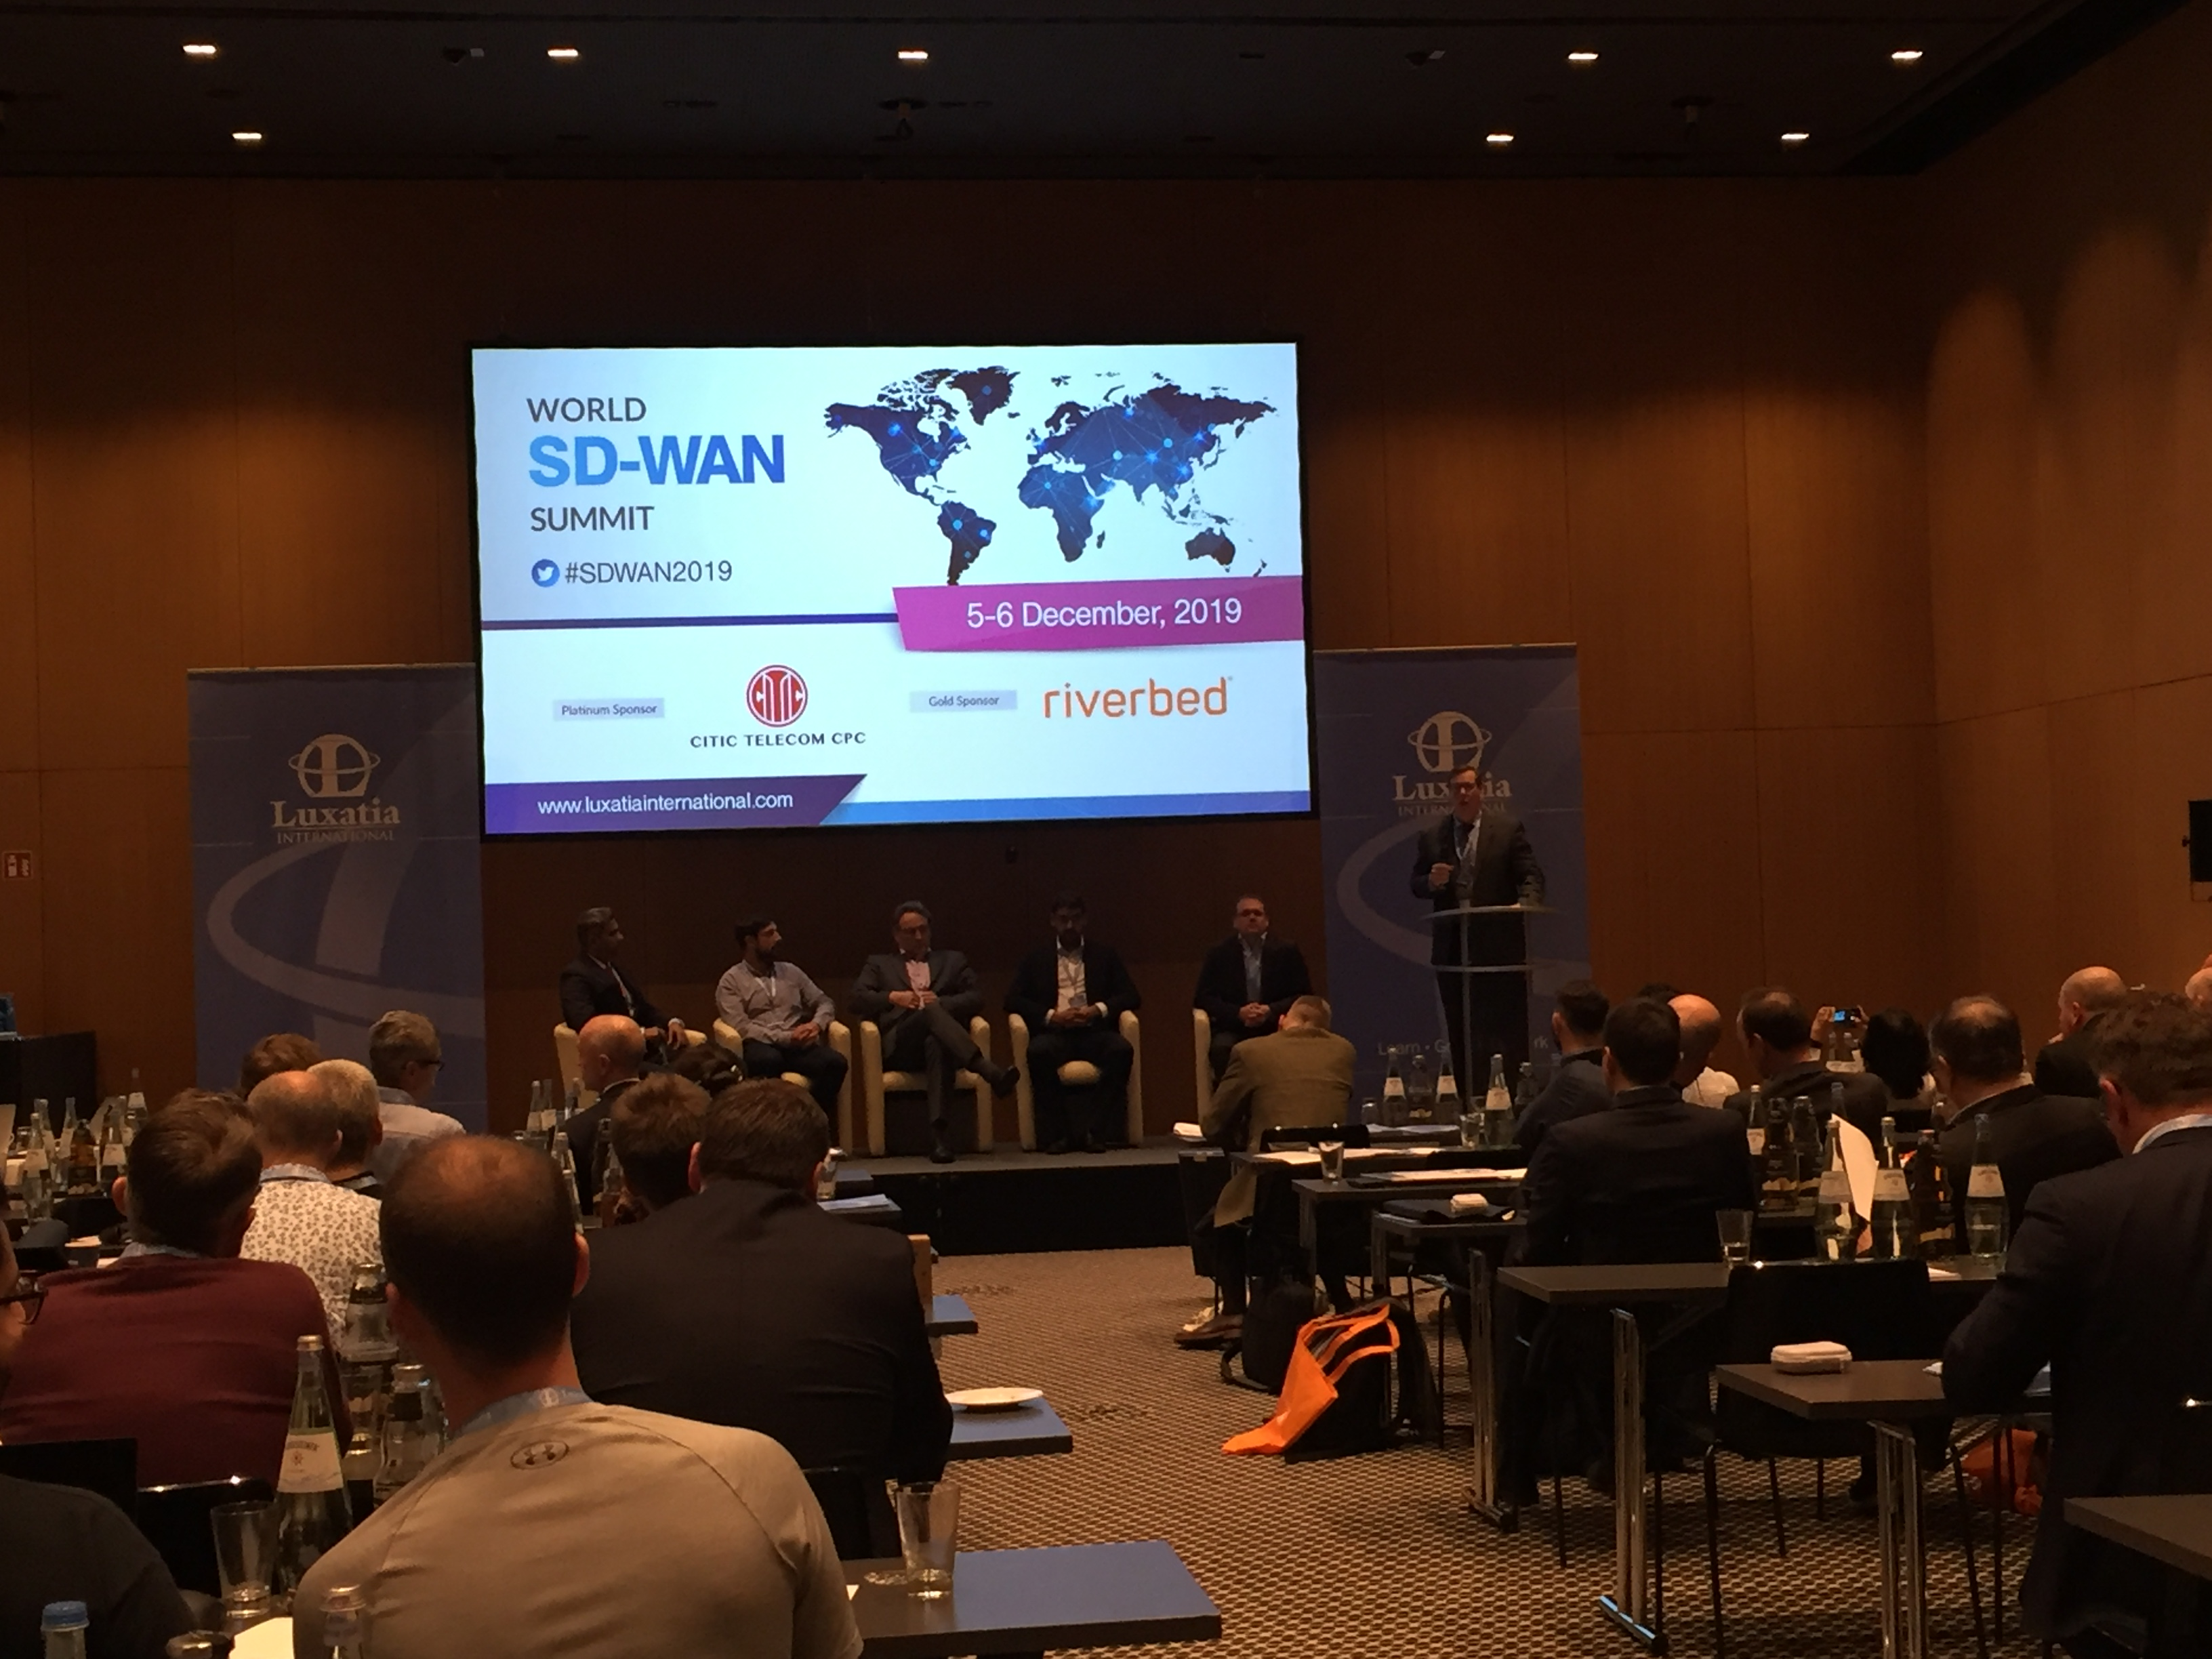 World SD-WAN Summit panel discussion